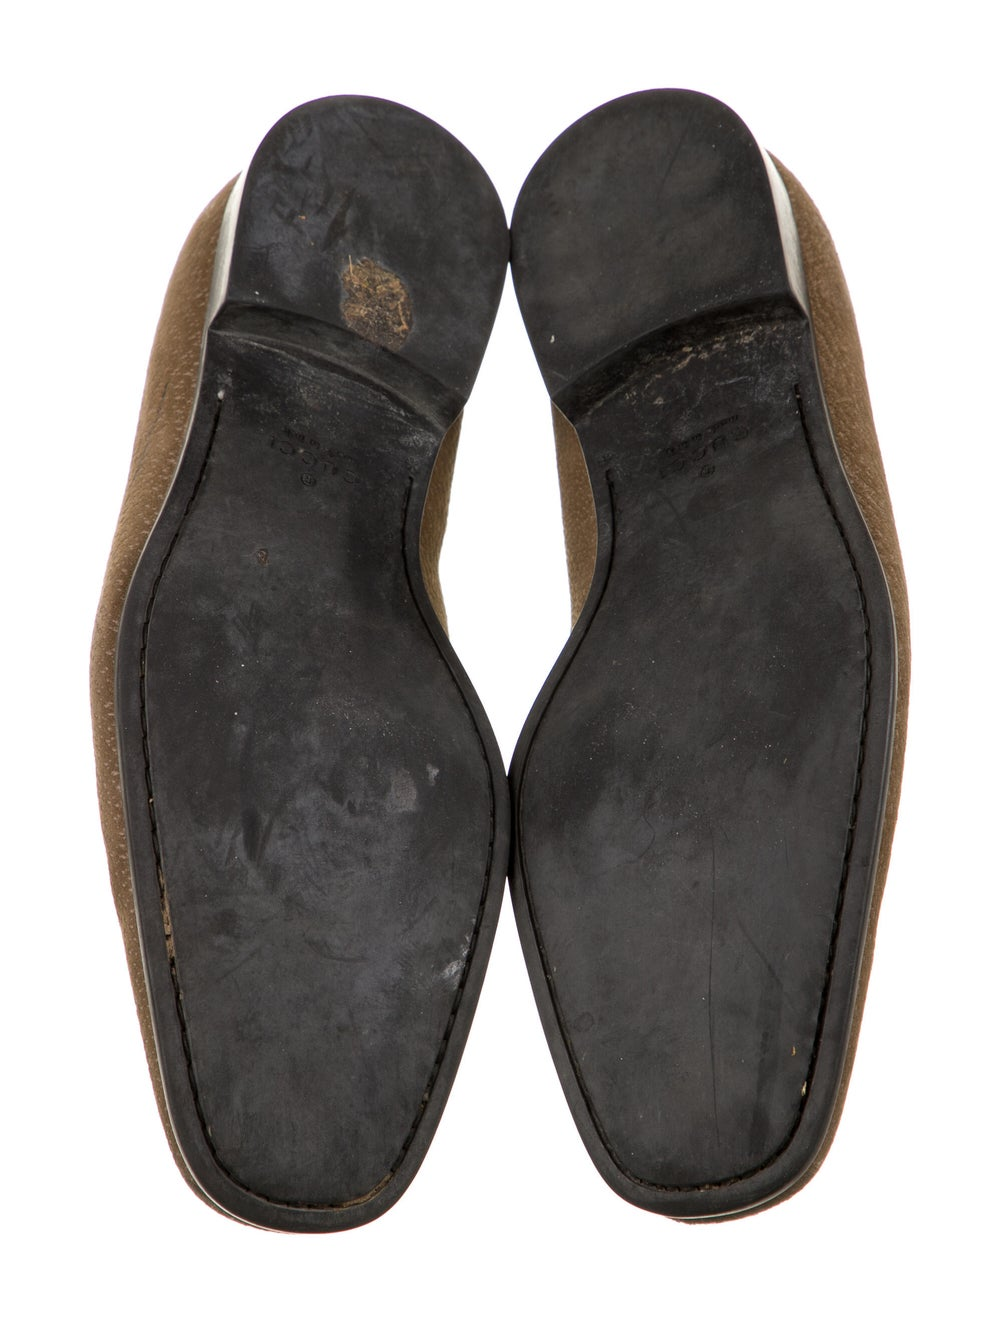 Gucci Suede Dress Loafers Green - image 5